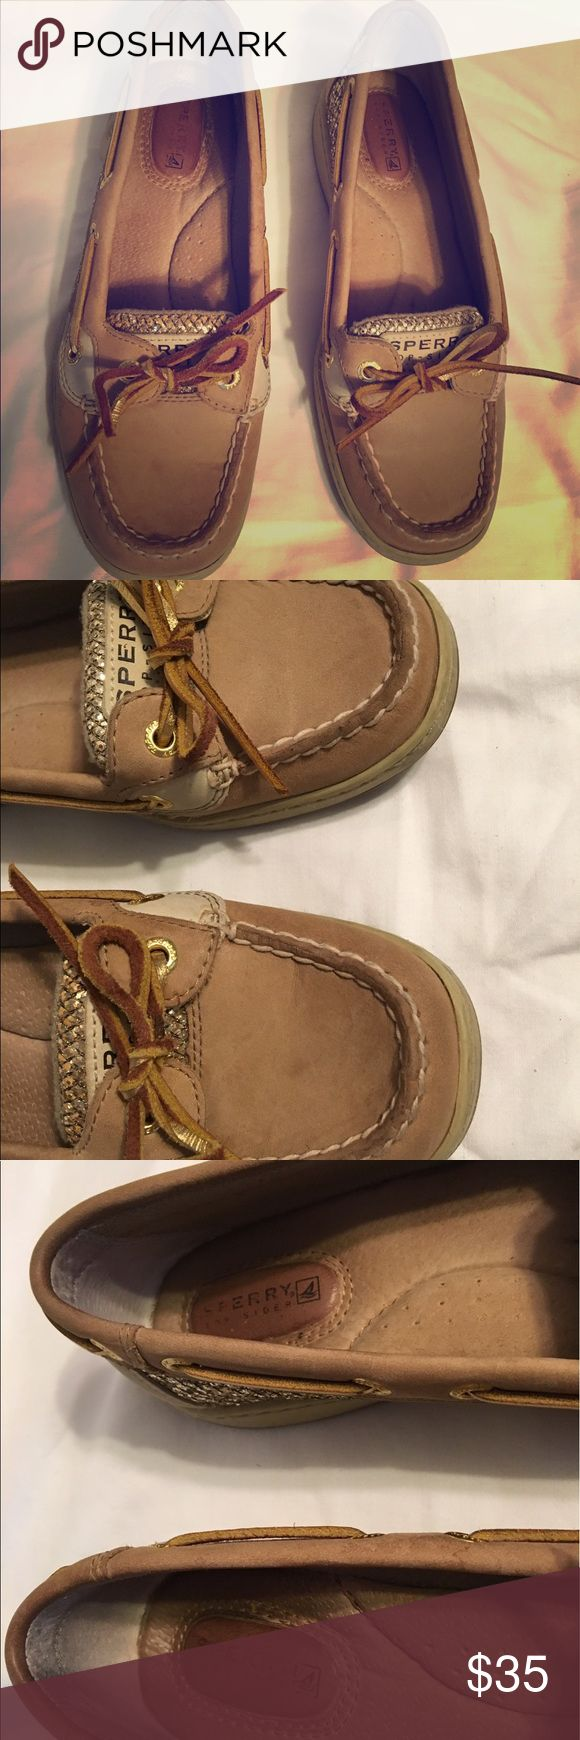 Sperry boat shoe Gold/brown boat shoes.  All day comfort and style! Genuine leather will last forever! EVA molded insole, adjustable lacing Sperry Shoes Flats & Loafers